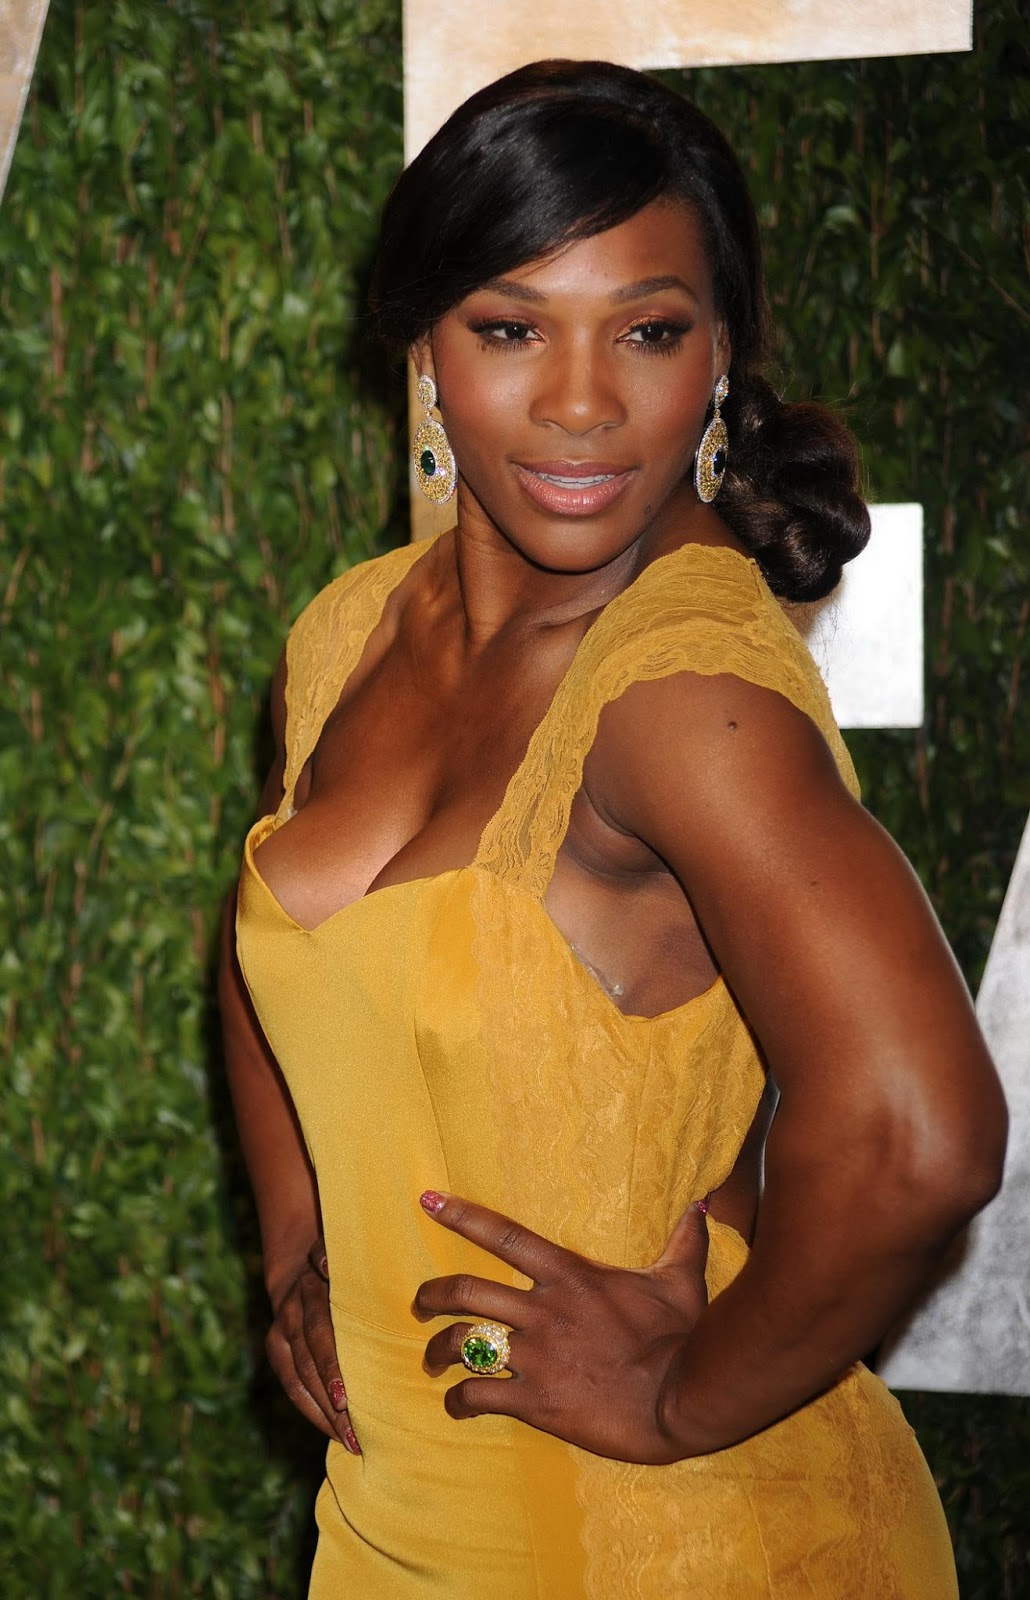 Serena williams in the nude pic 14